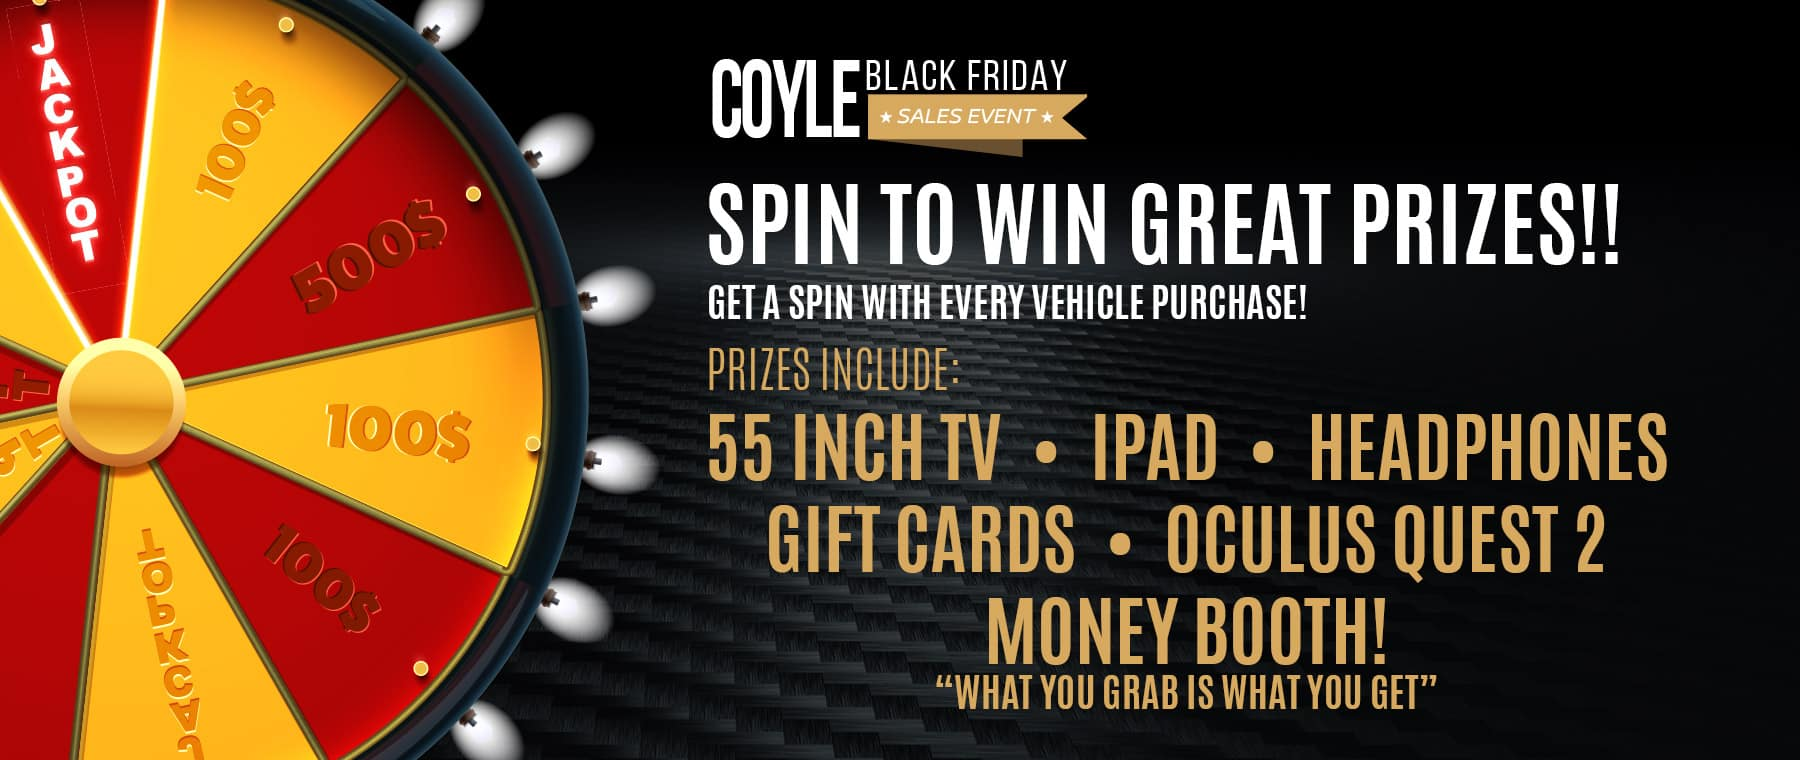 Spin the Prize Wheel at Coyle this Black Friday